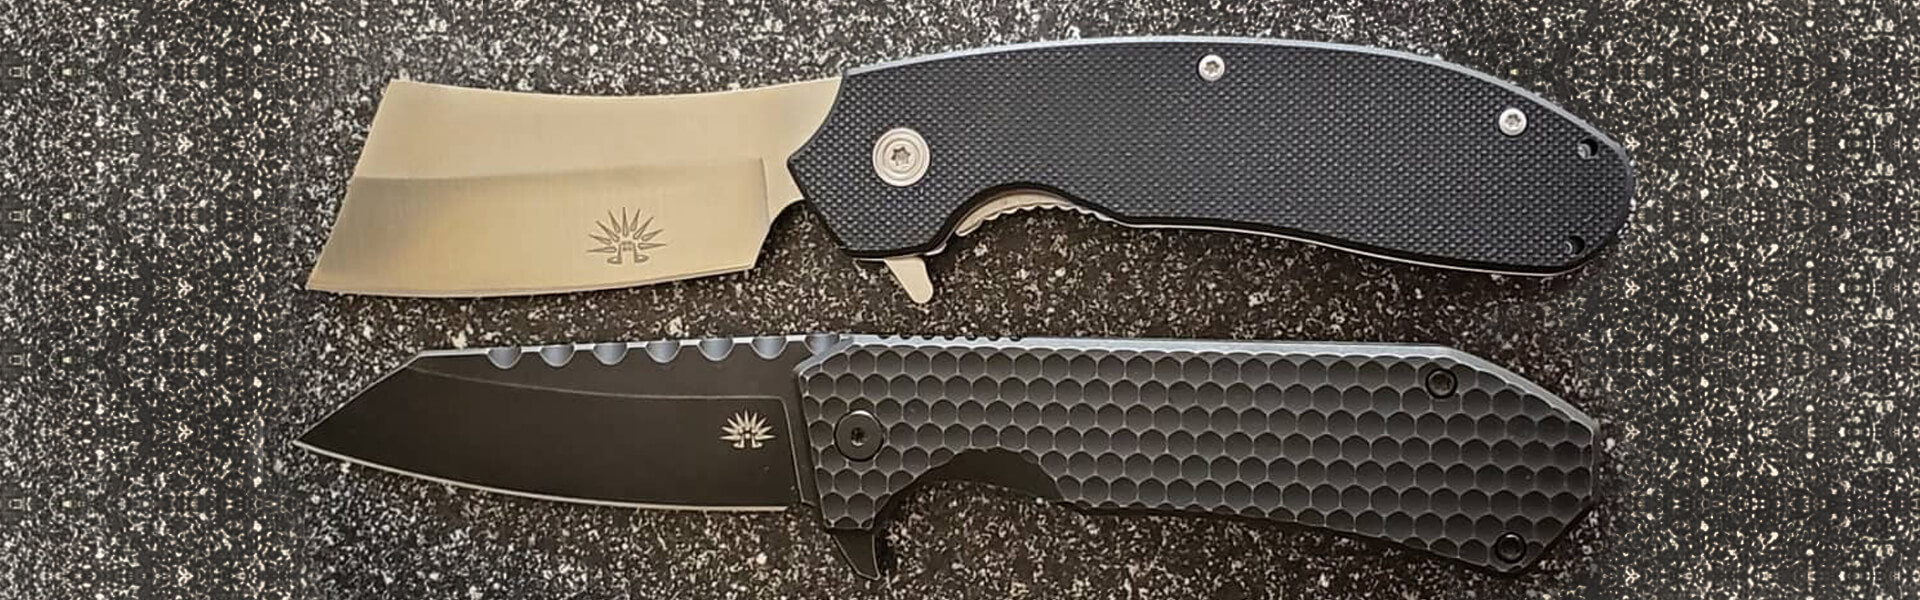 Titanium Versus Steel Scales On Knives: Pros And Cons